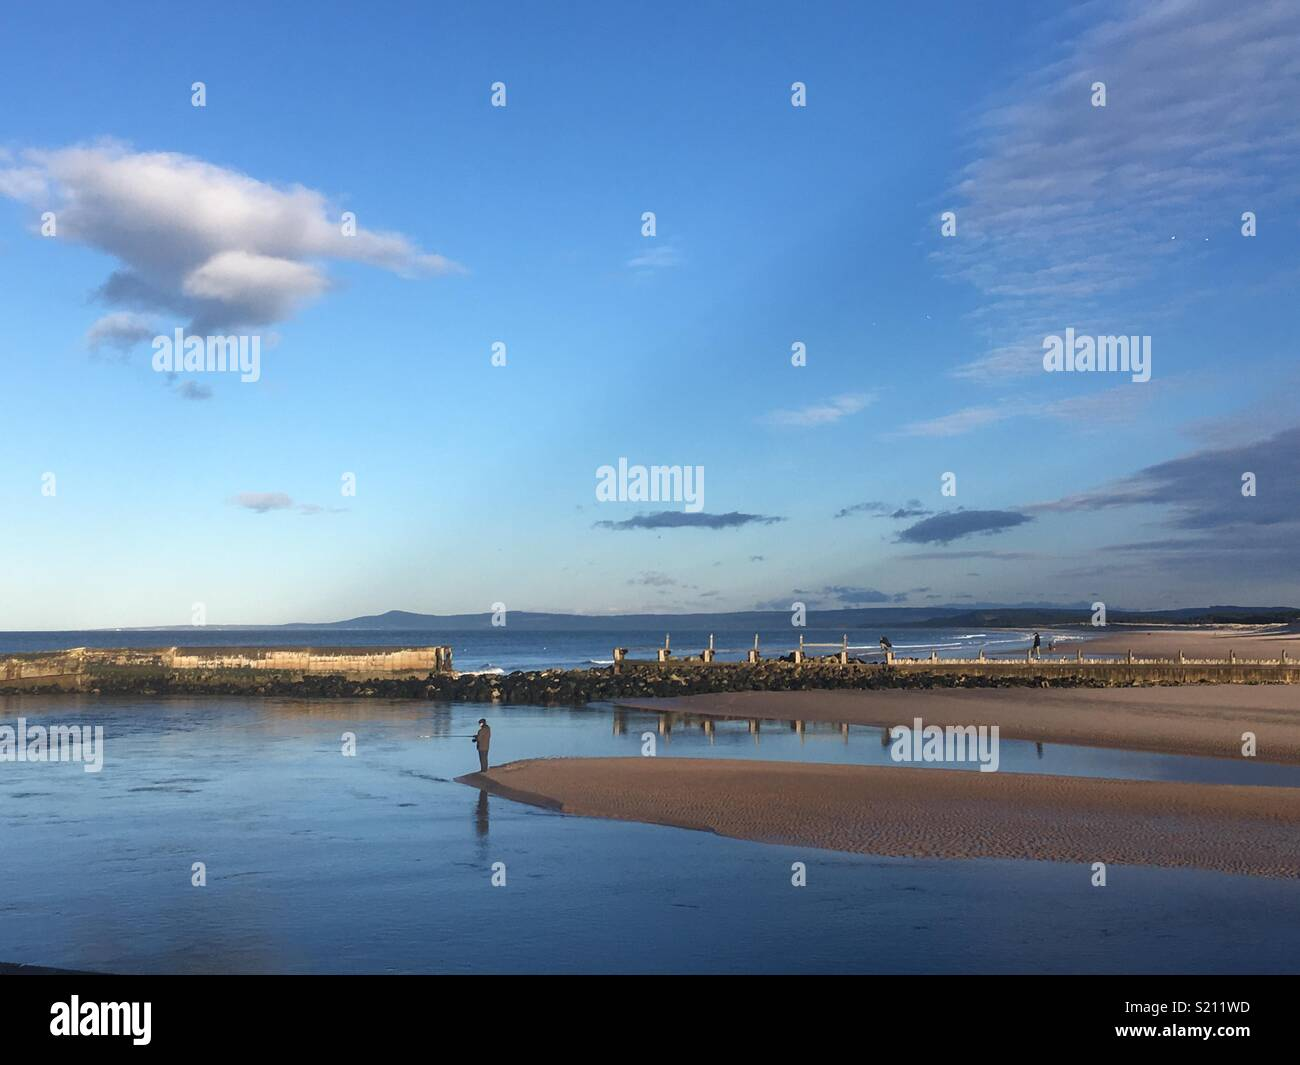 Lossiemouth on a Sunny Day - Stock Image